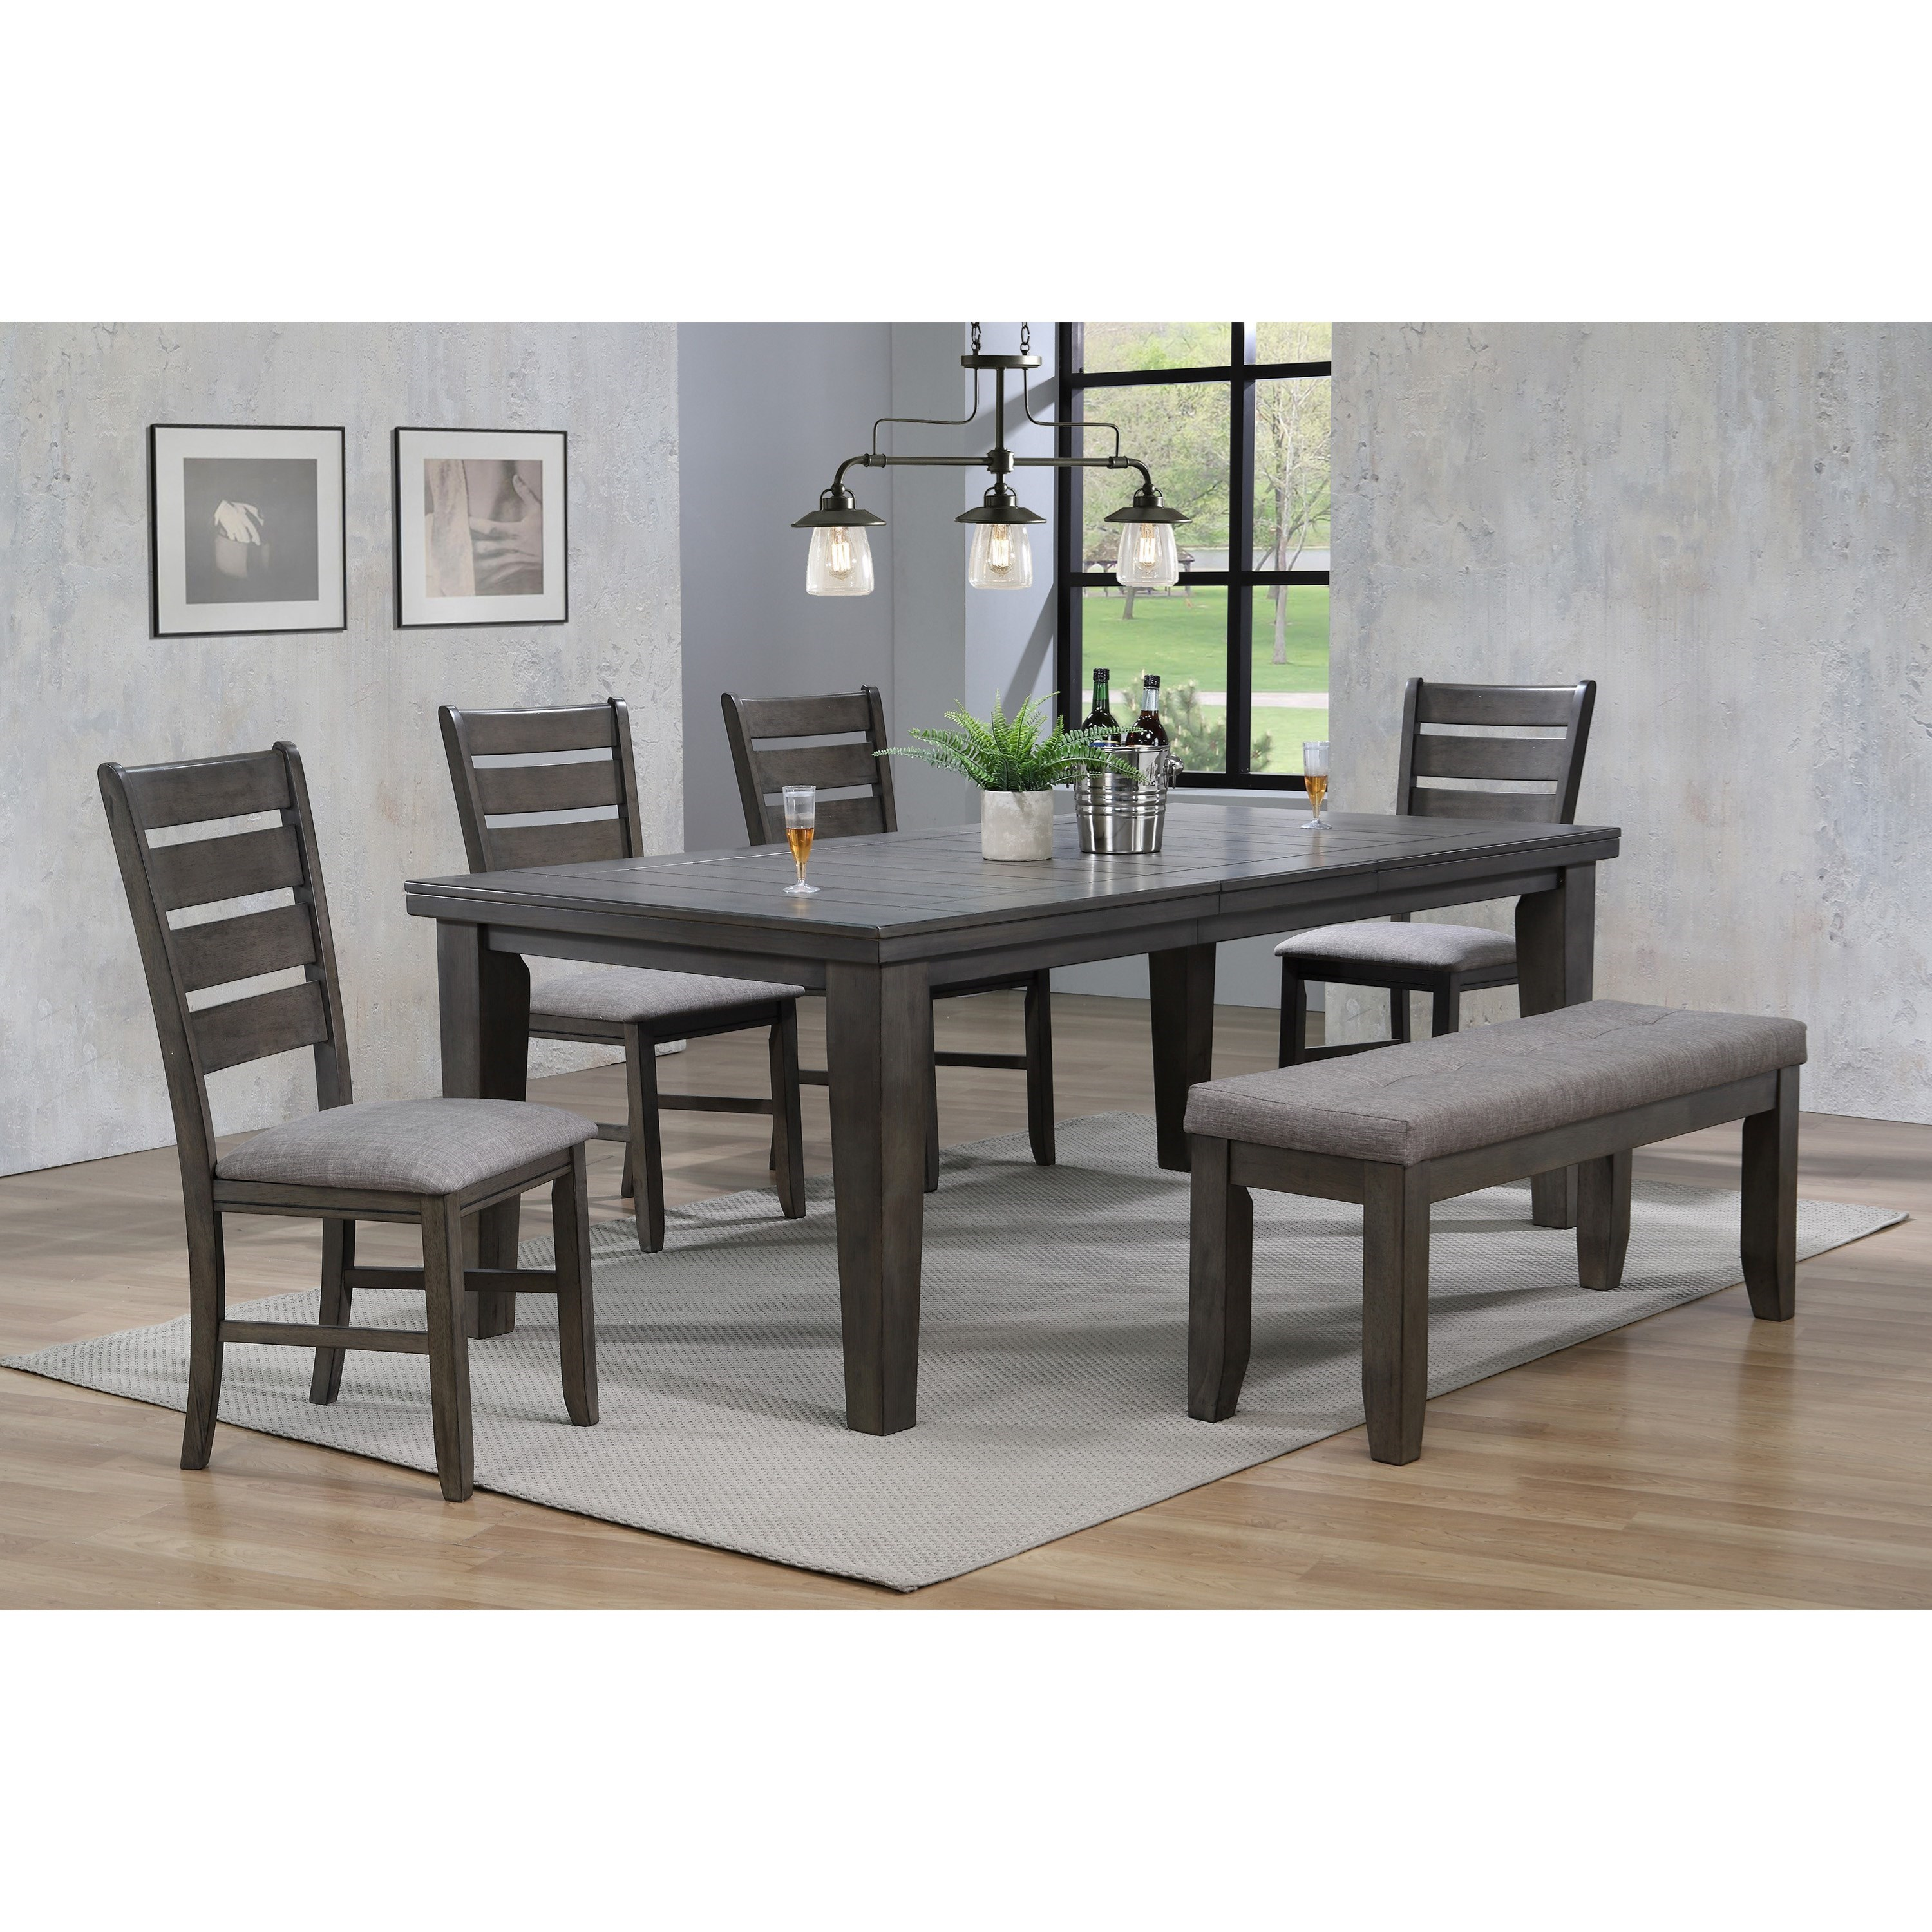 Crown Mark Bardstown 6 Piece Dining Set